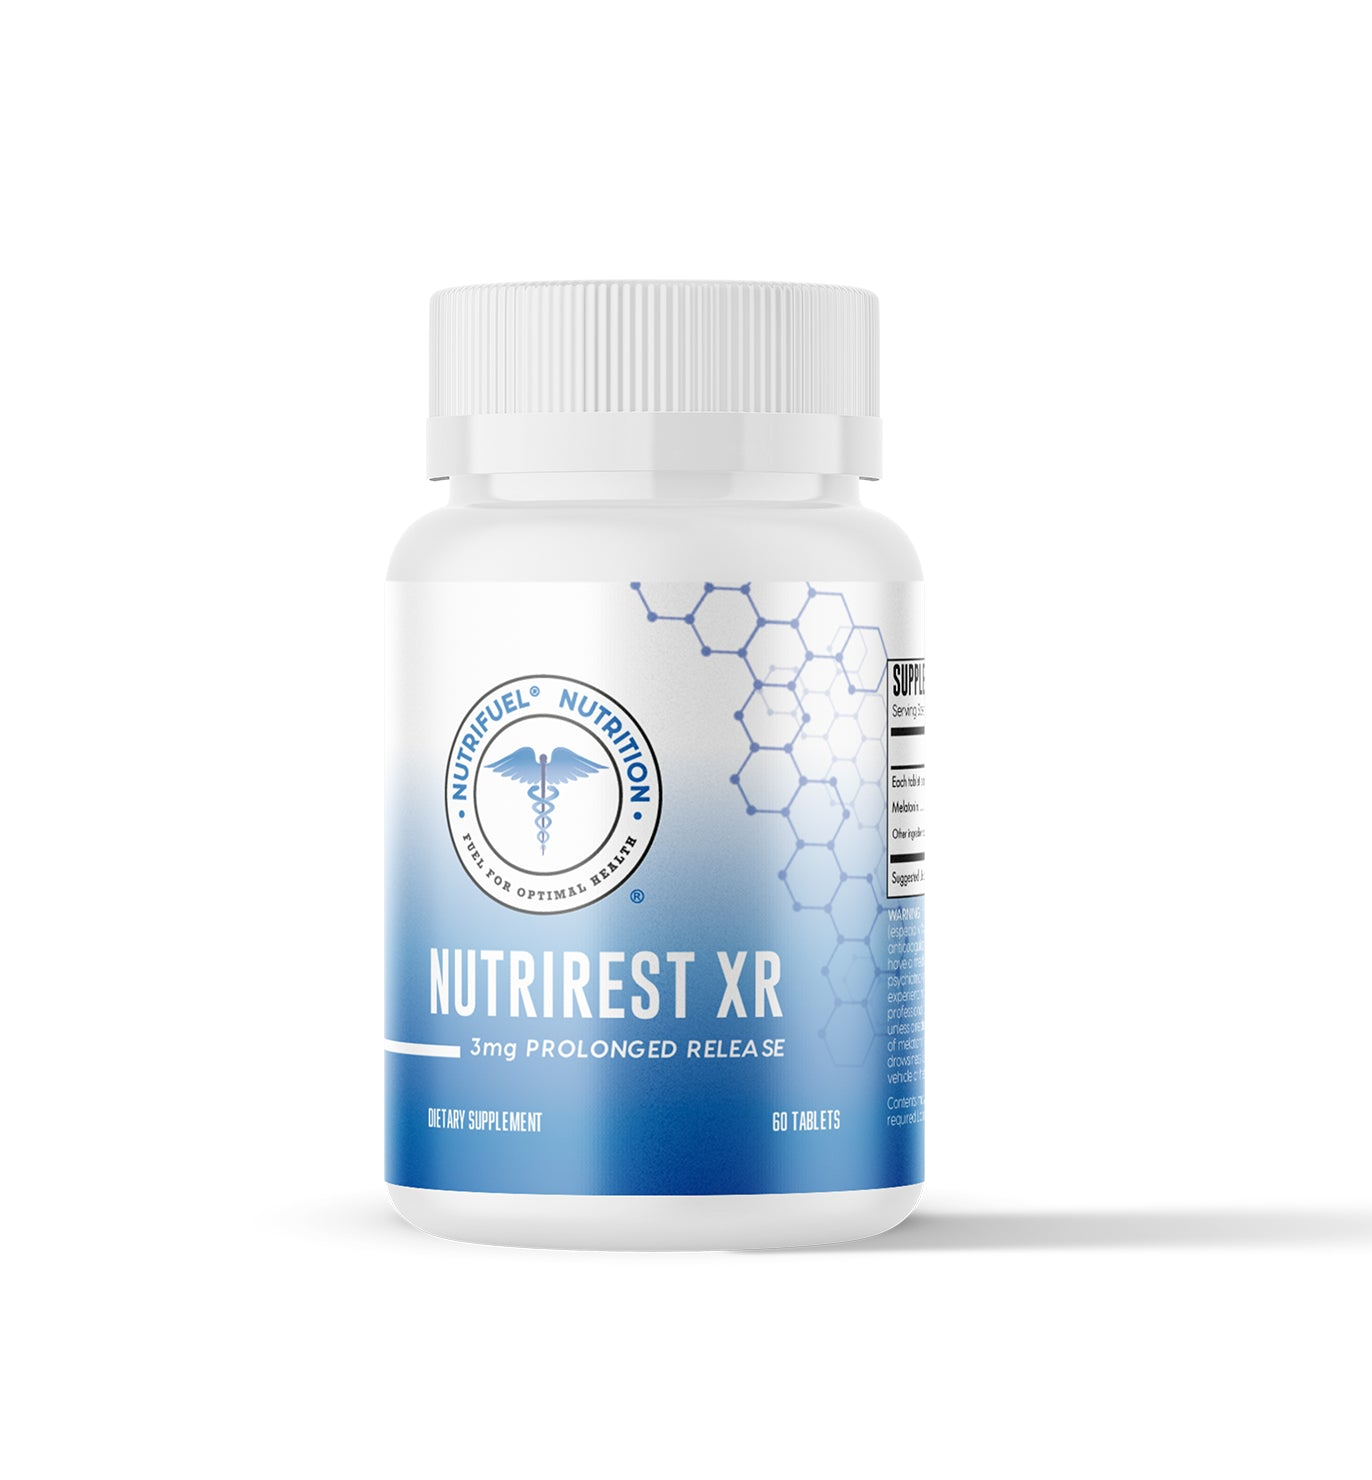 NutriRest XR